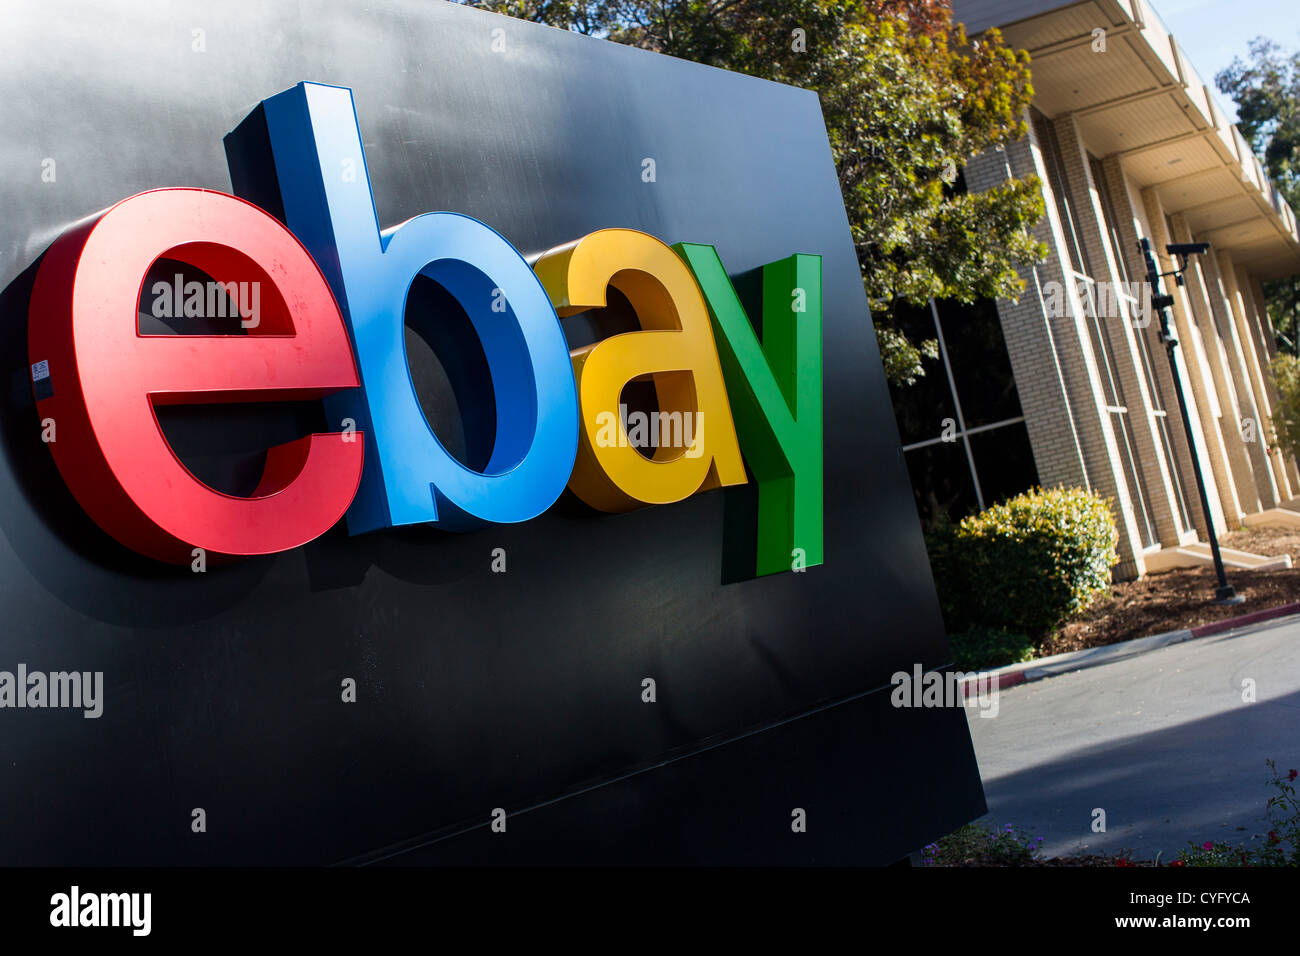 The headquarters of eBay, with a new logo.  - Stock Image